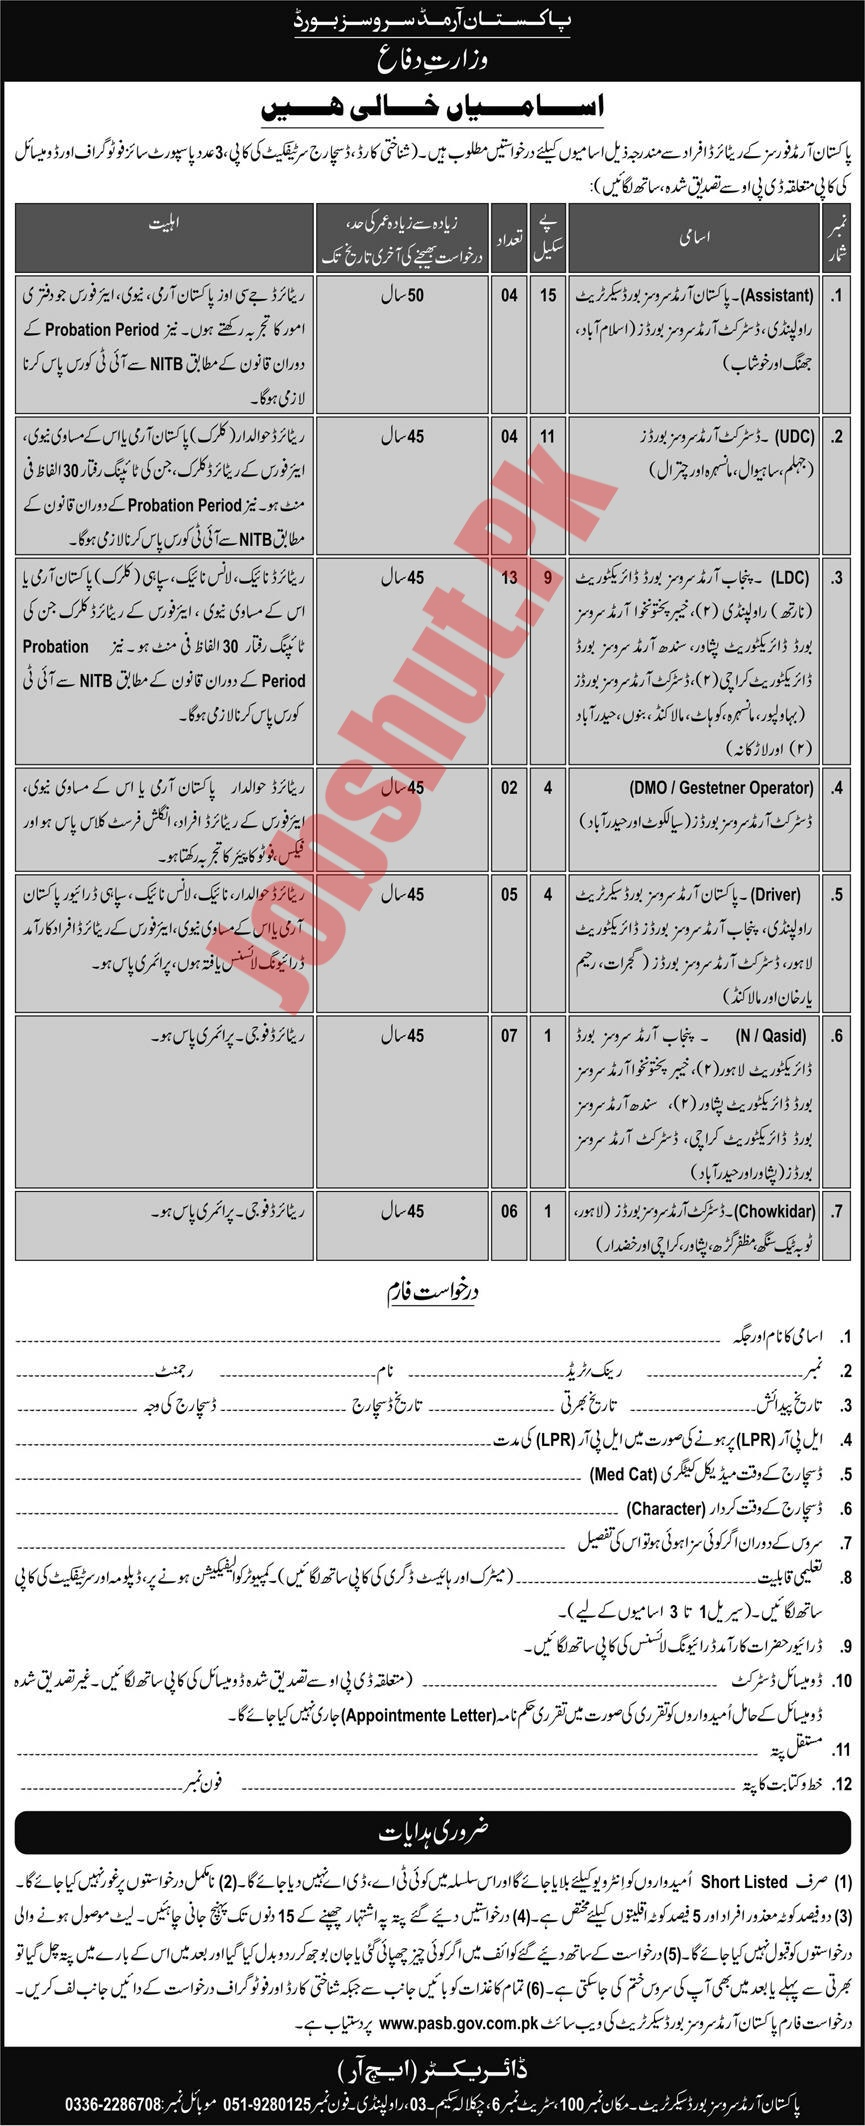 Pakistan Armed Services Board Ministry of Defence Rawalpindi jobs advertisement